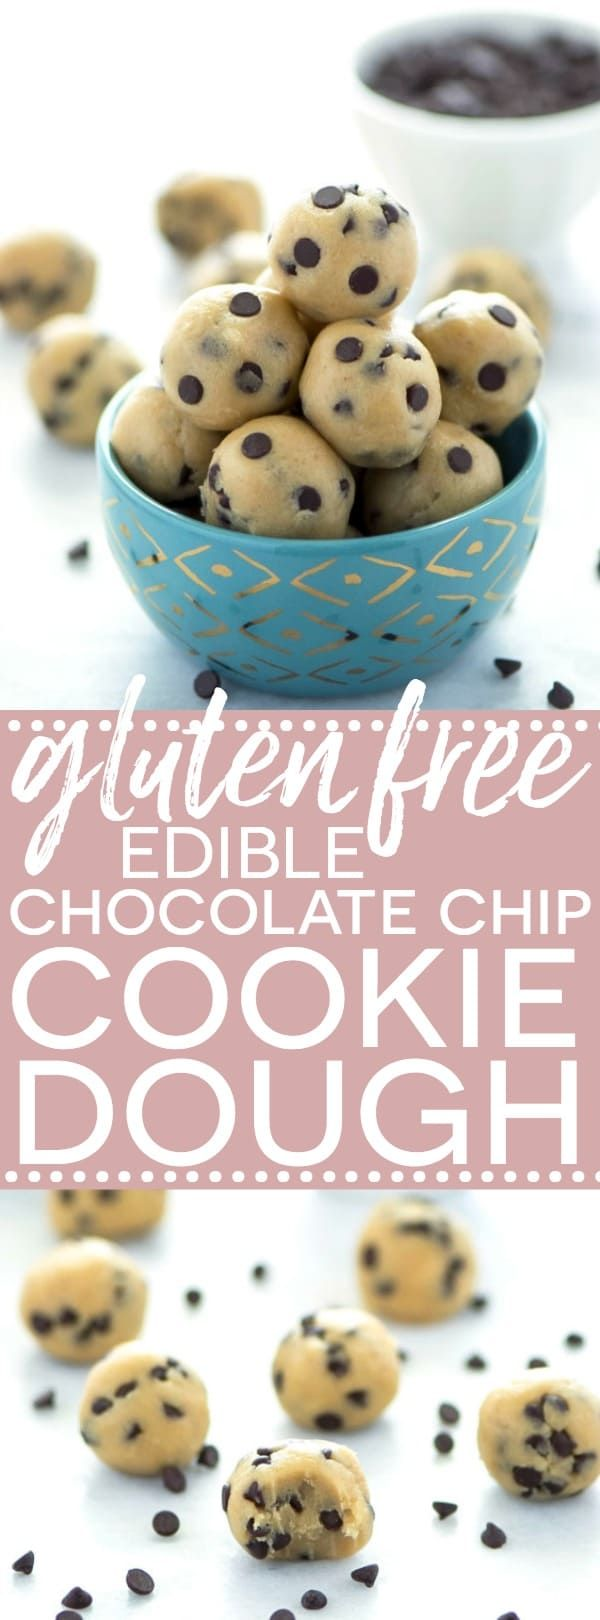 This gluten free and egg free edible chocolate chip cookie dough is easy to make and comes together quickly. Now you can safely eat that batter!